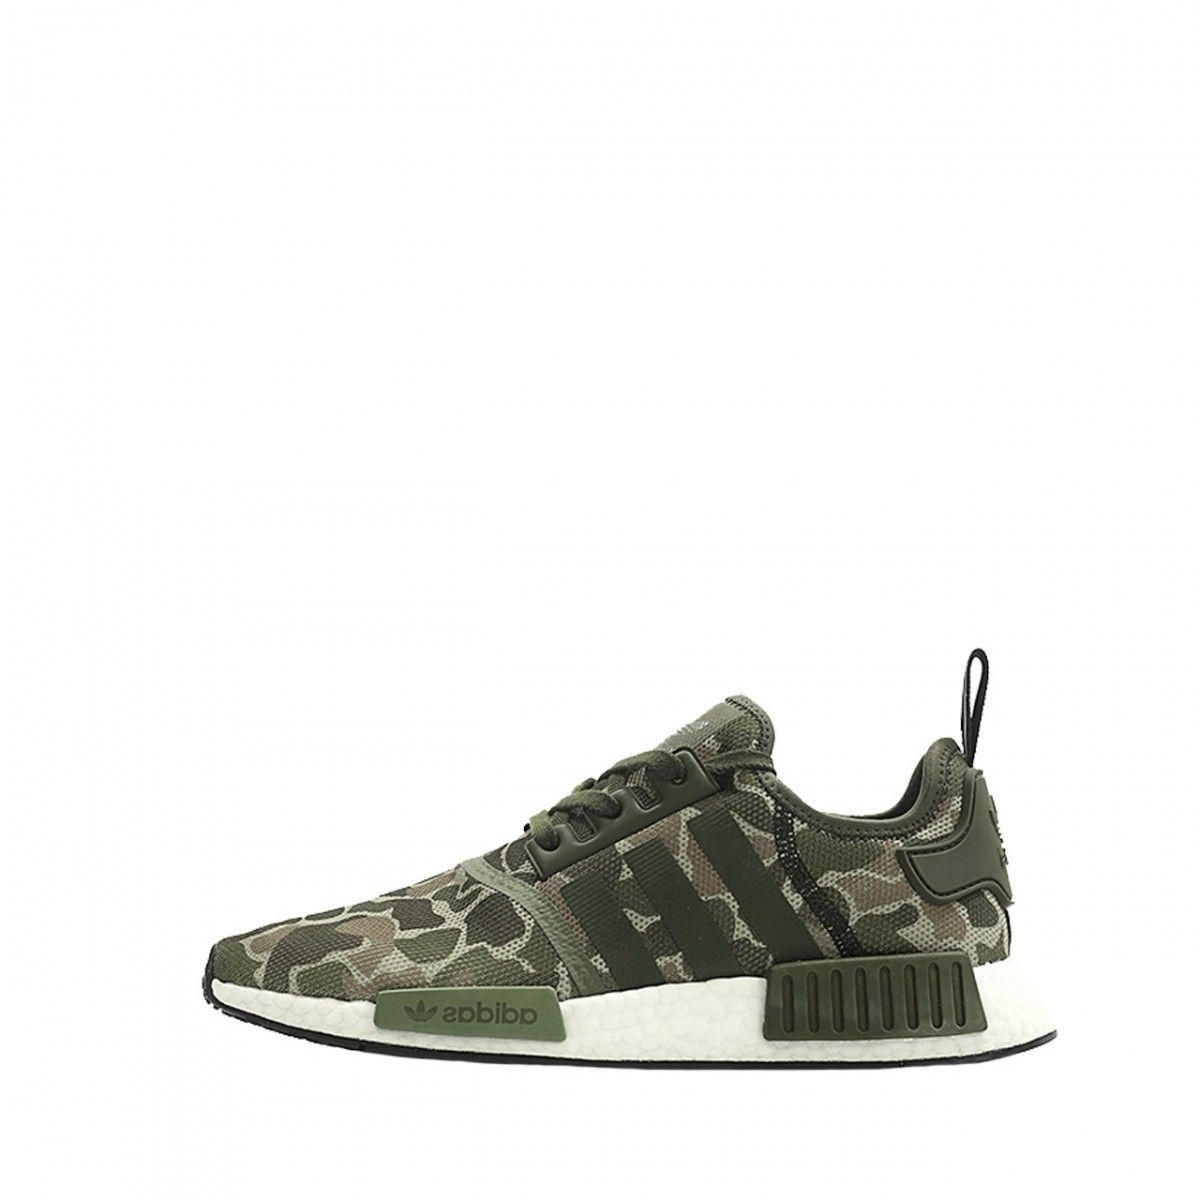 Basket CamouflageProducts Baskets Nmd R1 AdidasEt JT15ul3KcF